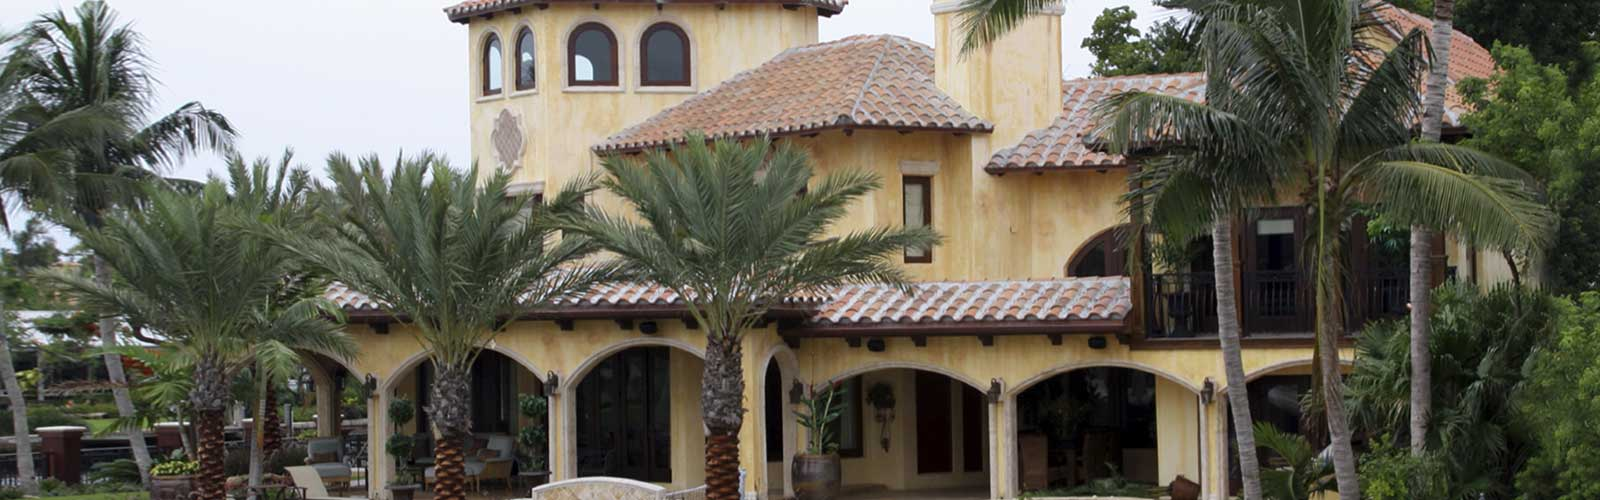 Immobilien Naples - Strand Immobilien - Haus kaufen Olde Naples Florida, Port Royal, Aqualane Shores, Olde Naples, Gulf Shores, Park Shore, Moorings, Coquina Sands, Royal Harbor, Vanderbilt Beach, Grey Oaks, Lely Resort, in Naples, Bonita Springs, Bonita Beach, Marco Island, Estero, Fort Myers, Fort Myers Beach, Sanibel, Cape Coral, Florida, USA